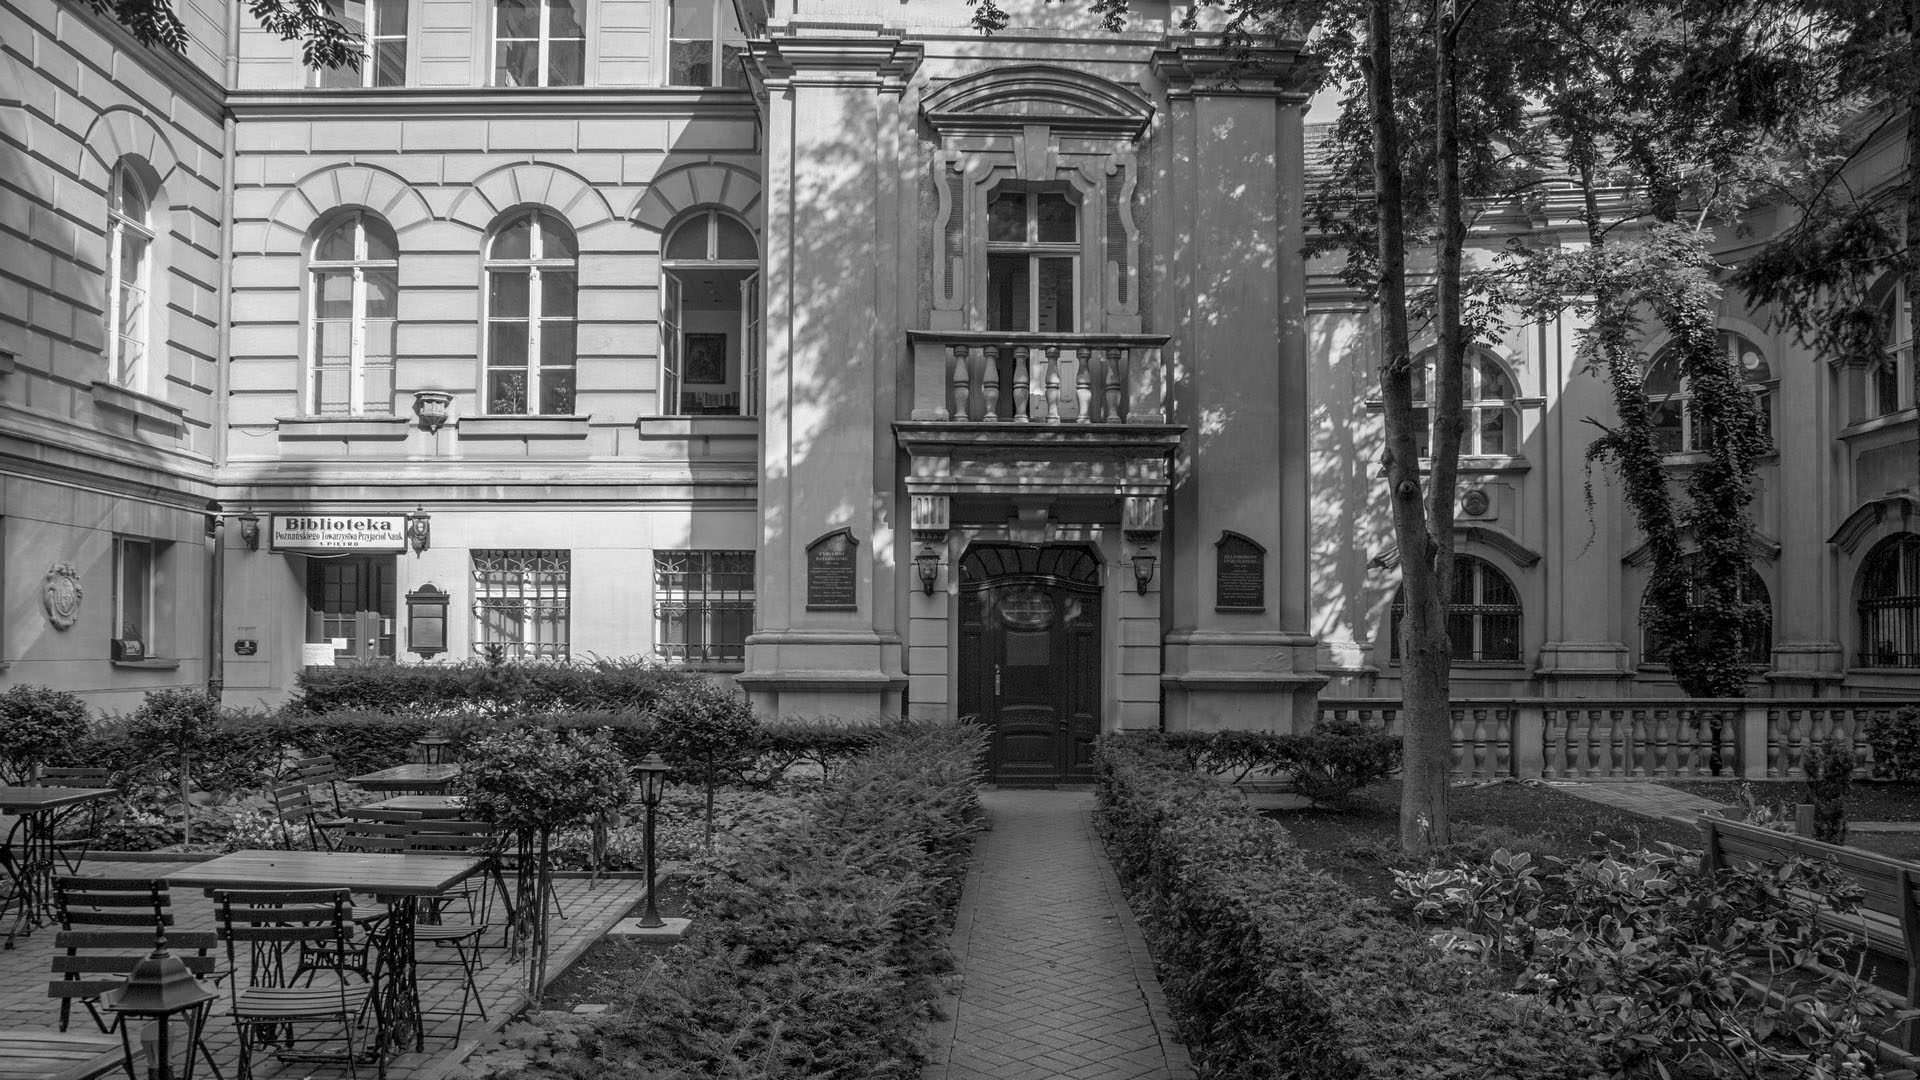 The Poznań Society for the Advancement of Arts and Sciences